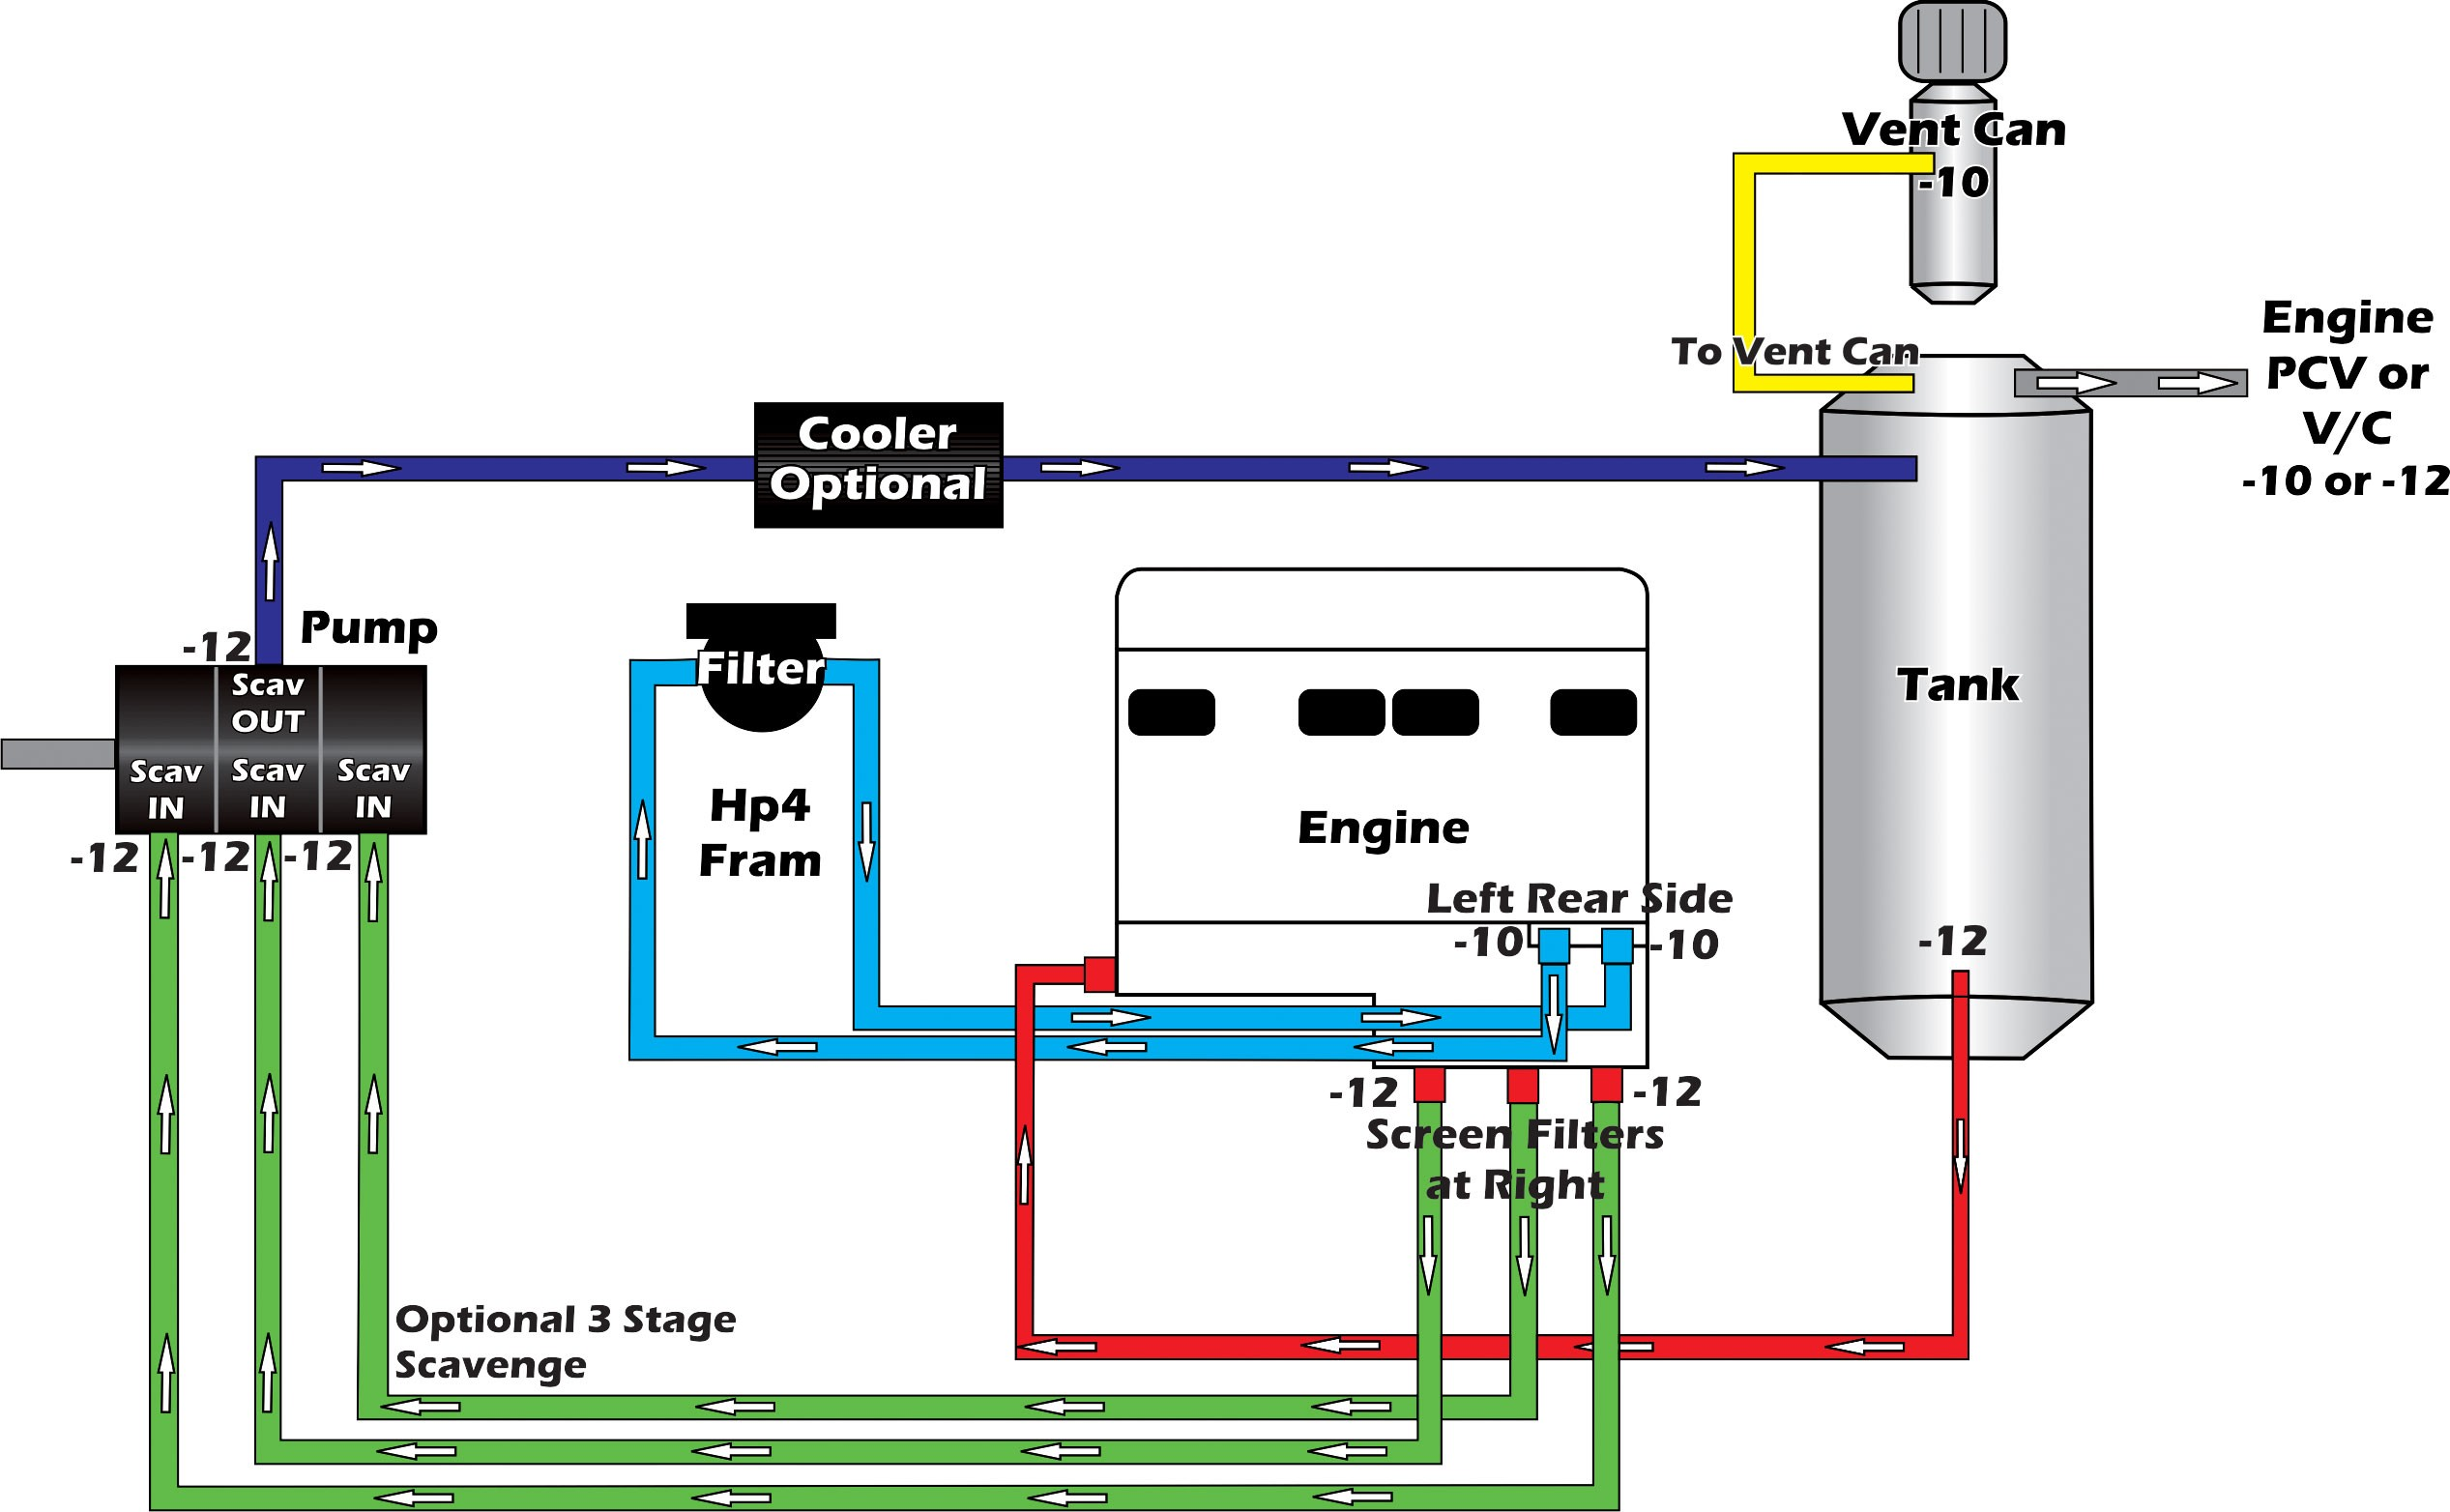 Dry Sump Oil System Diagram Aluminum Lobe Stage Dry Sump Oil Pump Angus Racing Wiring Diagram Of Dry Sump Oil System Diagram